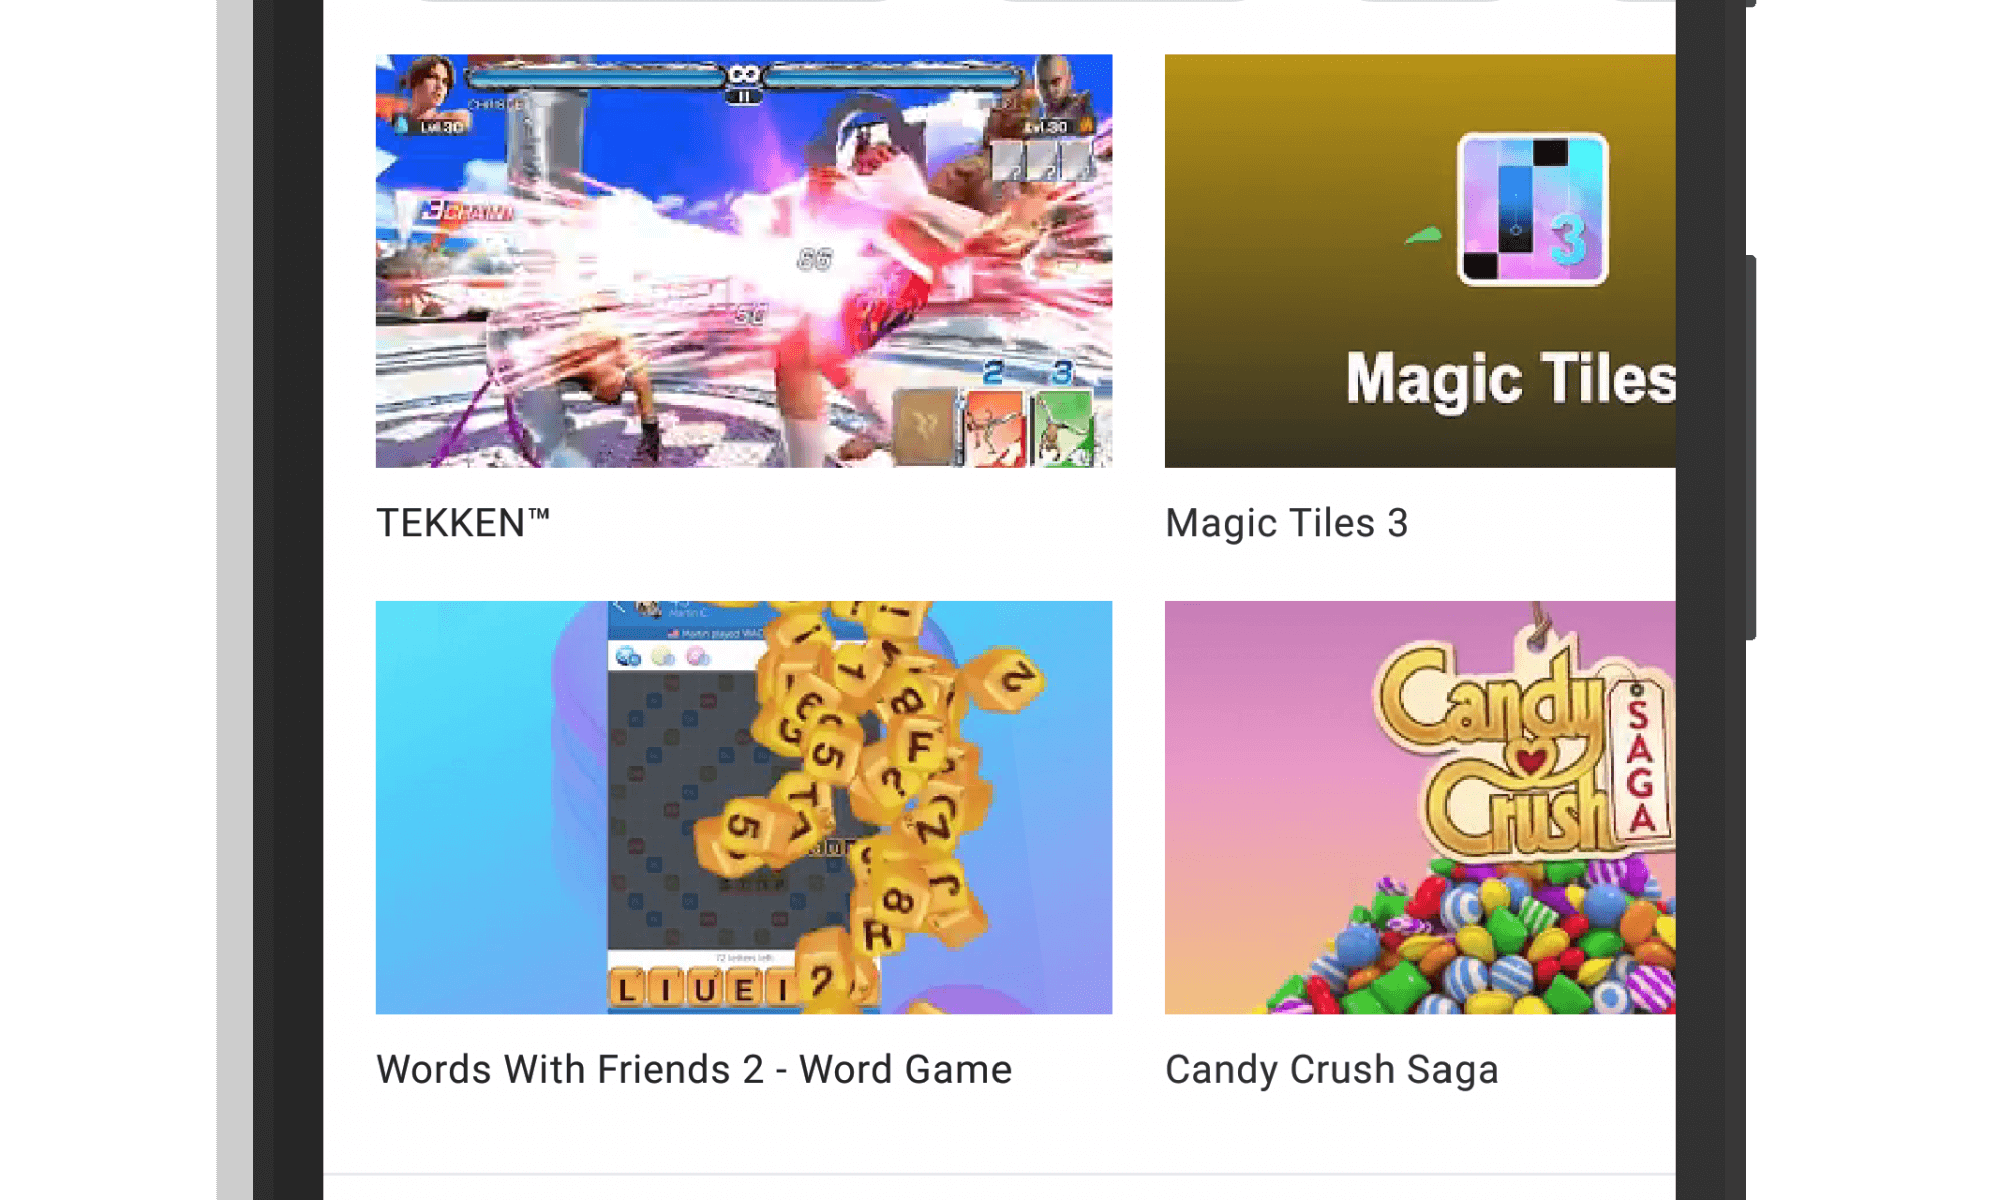 Arcade Tab in Google Play Games